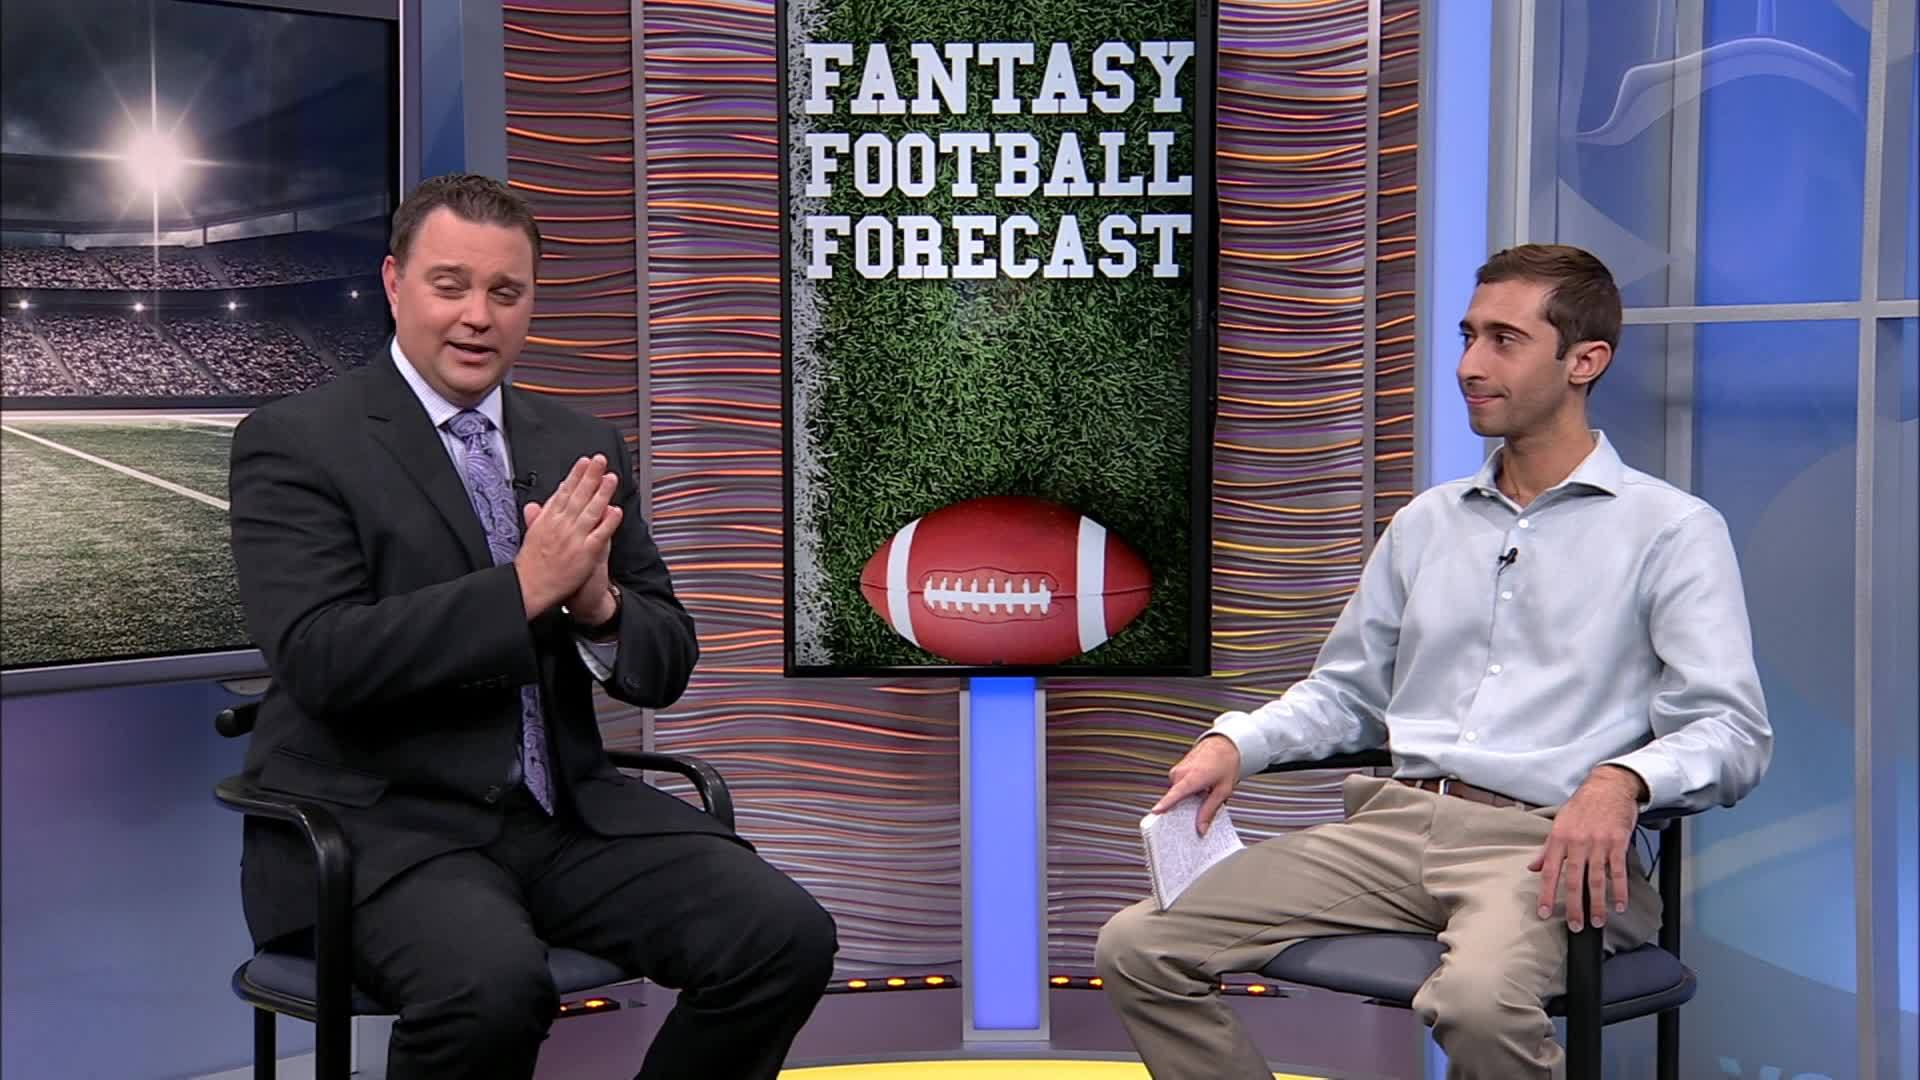 Thanksgiving games play a big role in the Fantasy Football Forecast